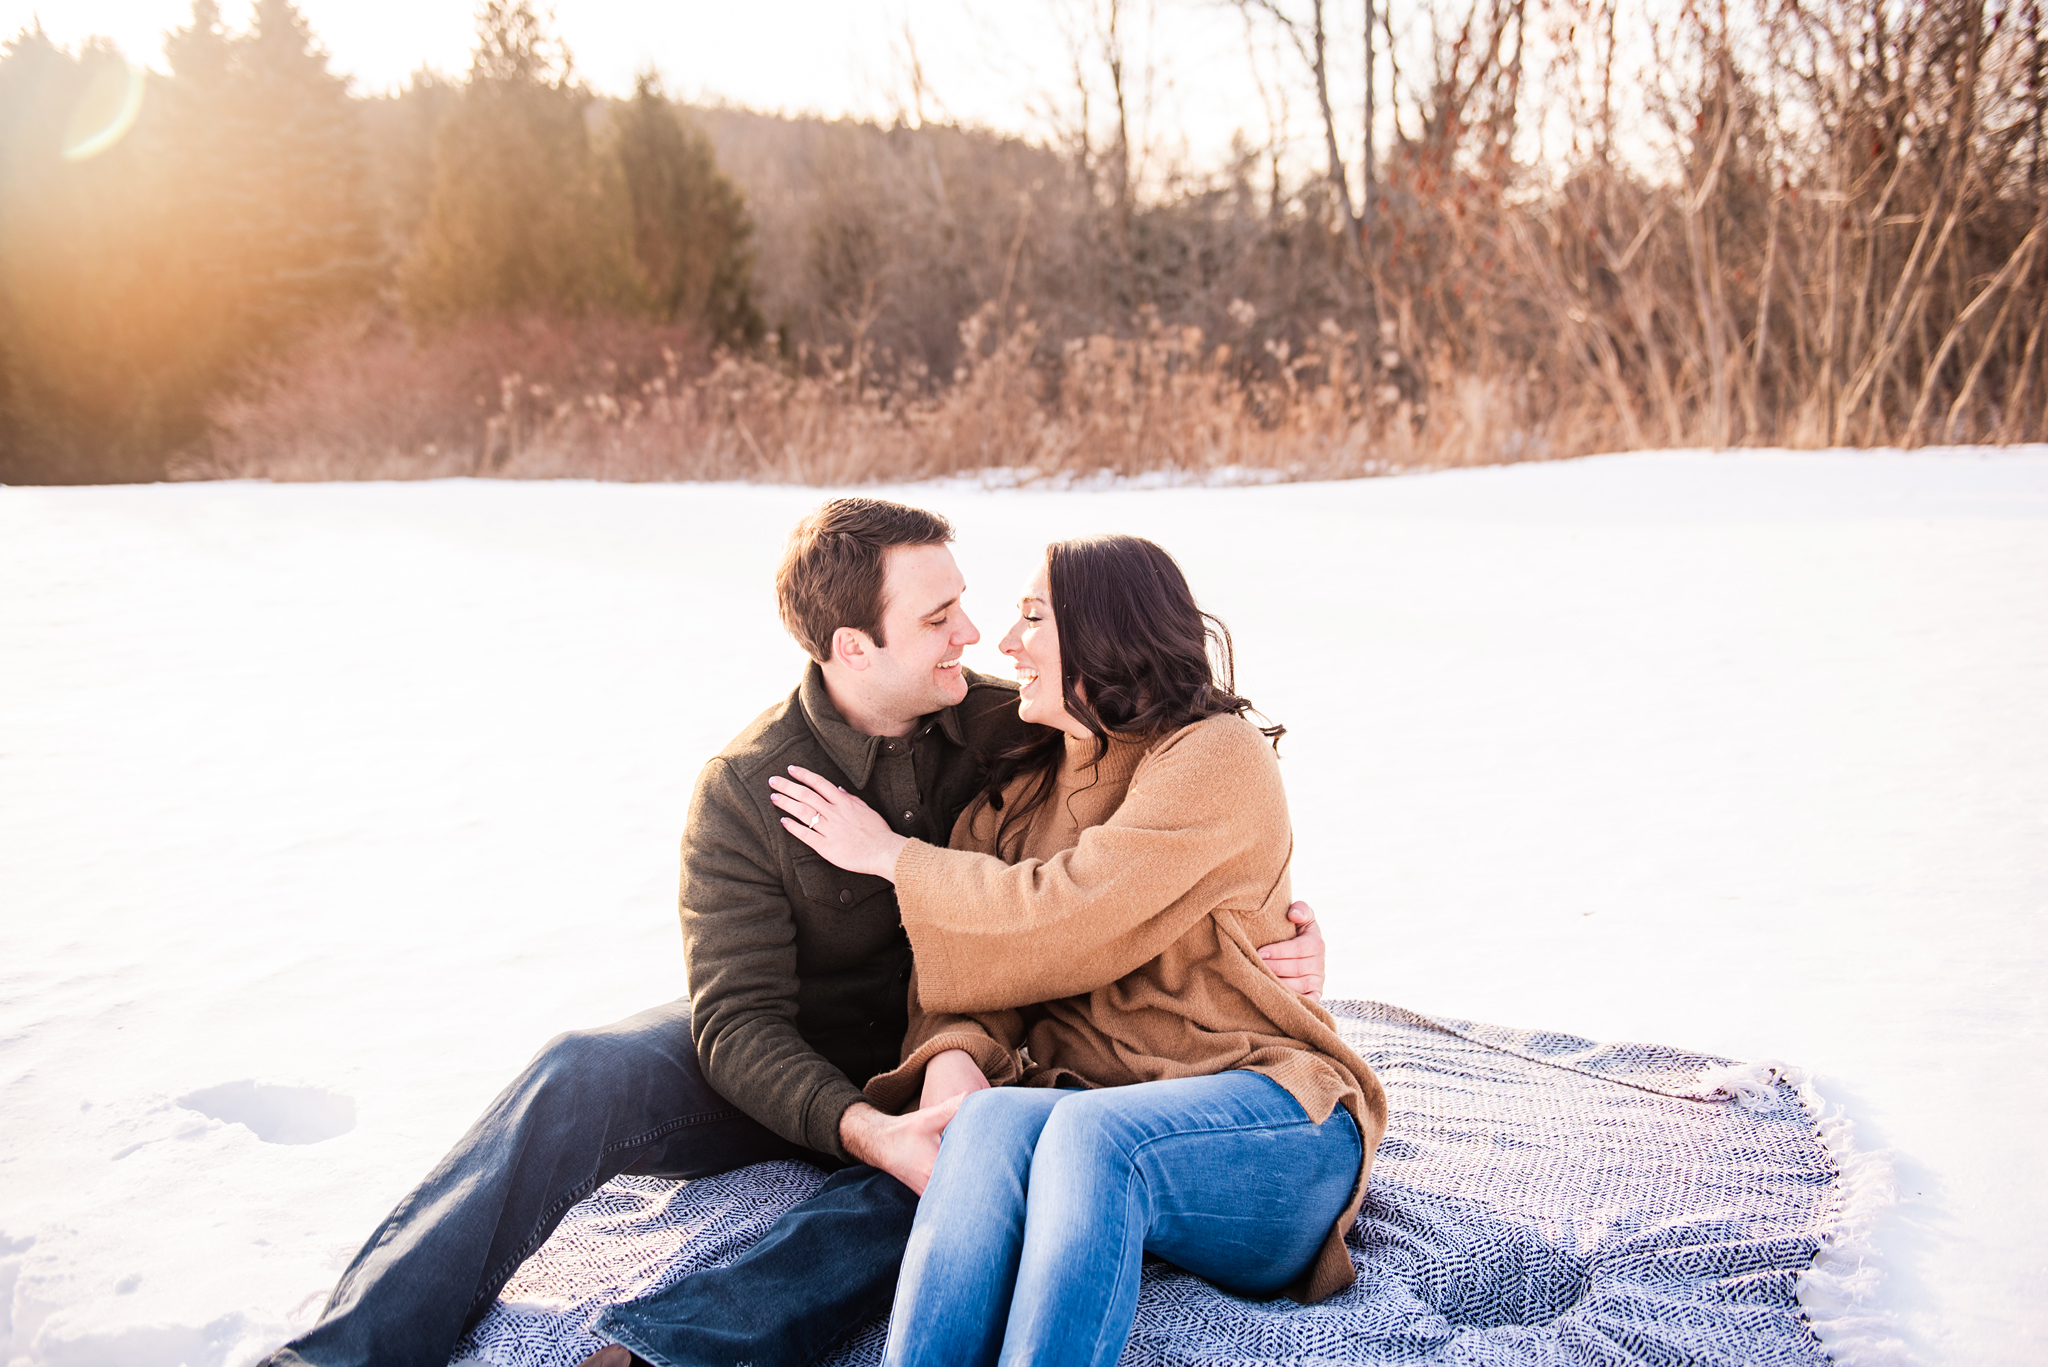 Fallbrook_Central_NY_Engagement_Session_JILL_STUDIO_Rochester_NY_Photographer_DSC_4819.jpg